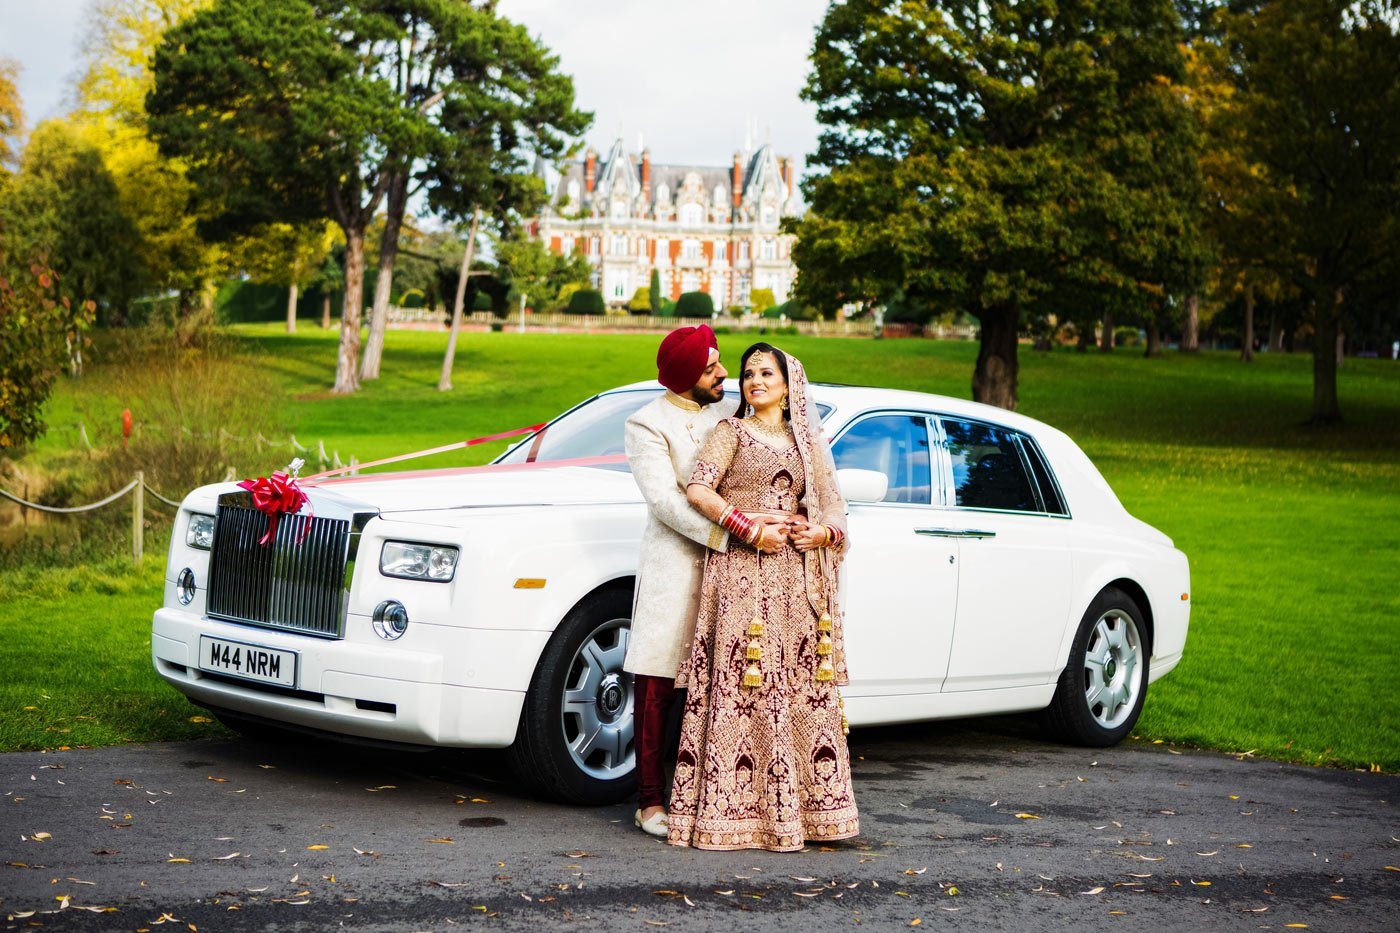 Indian Wedding Photography and Videography at Chateau Impney // Bavan & Kieran